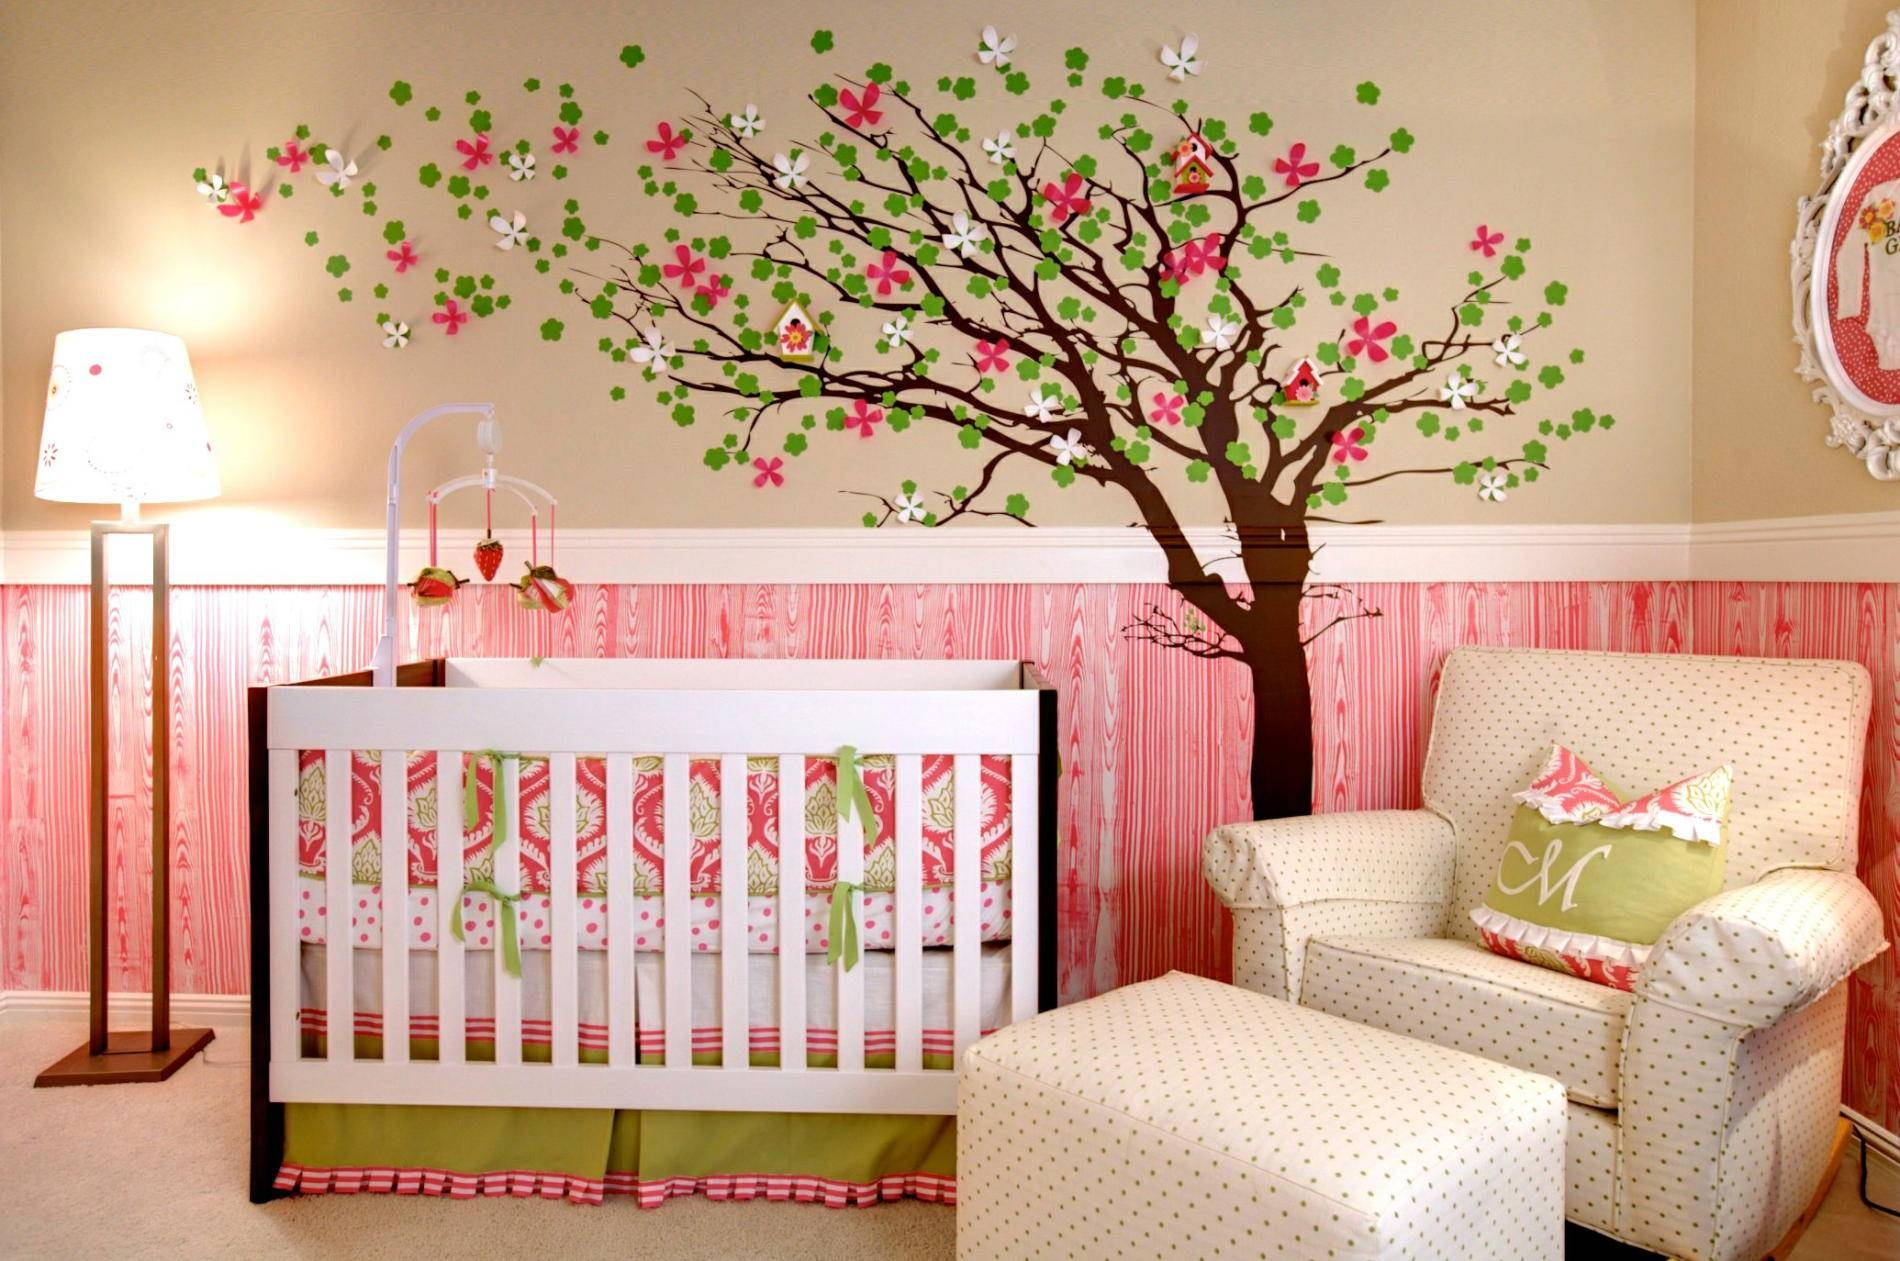 Baby Nursery: Accent Wall Decorations For Baby Room With Murals Regarding Most Recently Released Baby Nursery 3D Wall Art (View 9 of 20)